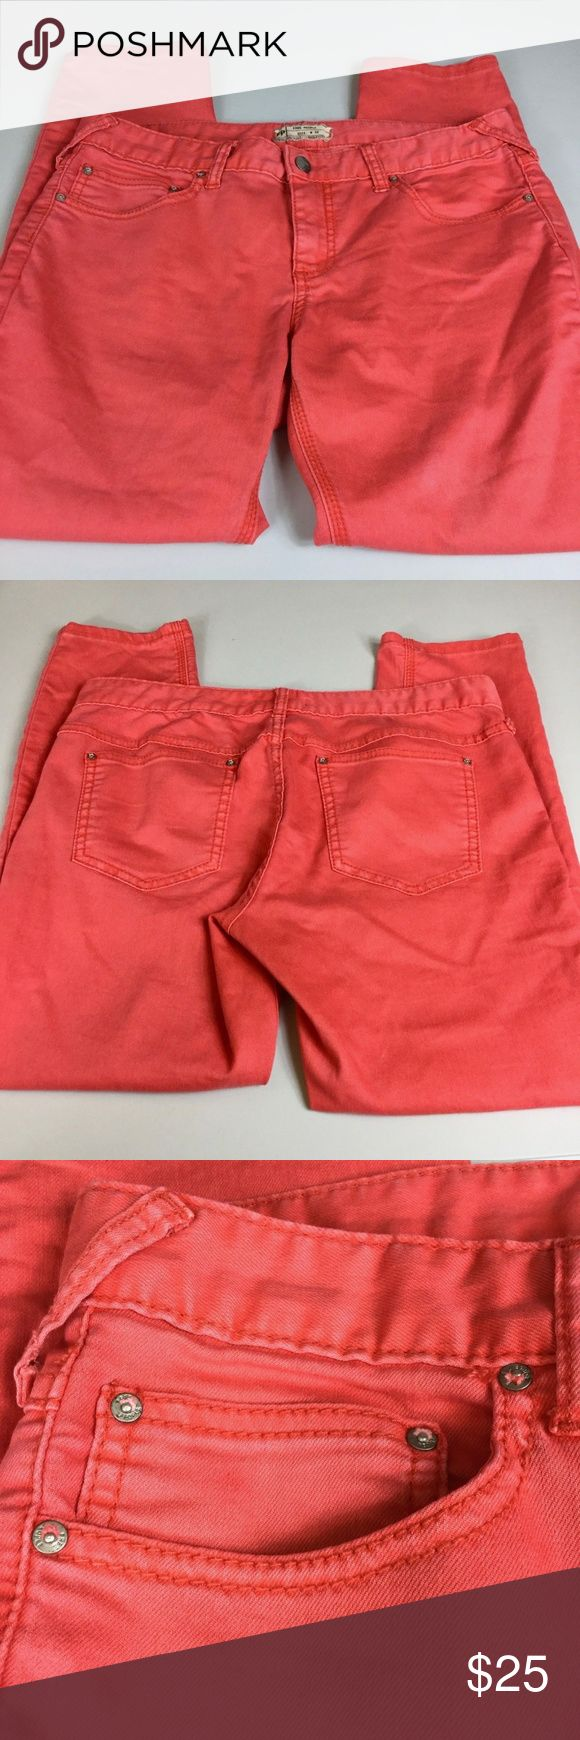 """Free People Pink Coral Skinny Cropped Jeans 30 This listing is for a pair of women's cropped/capri stretch denim jeans by Free People in a bright, pretty coral pink color.   Measurements: Waist: 34"""", Inseam: 27"""" Free People Jeans Ankle & Cropped"""